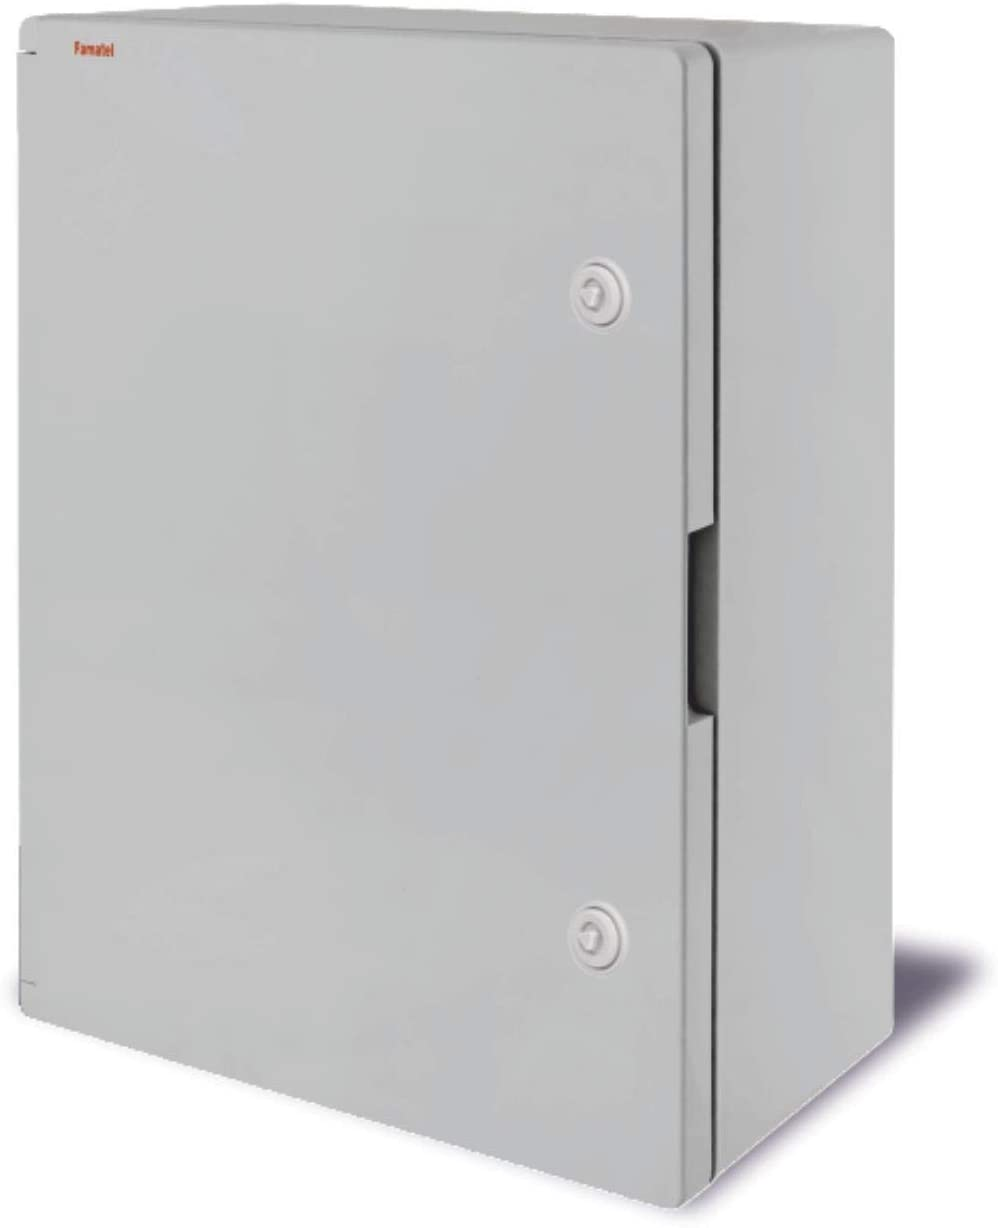 Box made in ABS Thermoplastic 15.75x19.69x6.89 inches Includes Mounting Galvanized Metal Plate CE Certified Easylife Tech Watertight IP65 Enclosure By Famatel